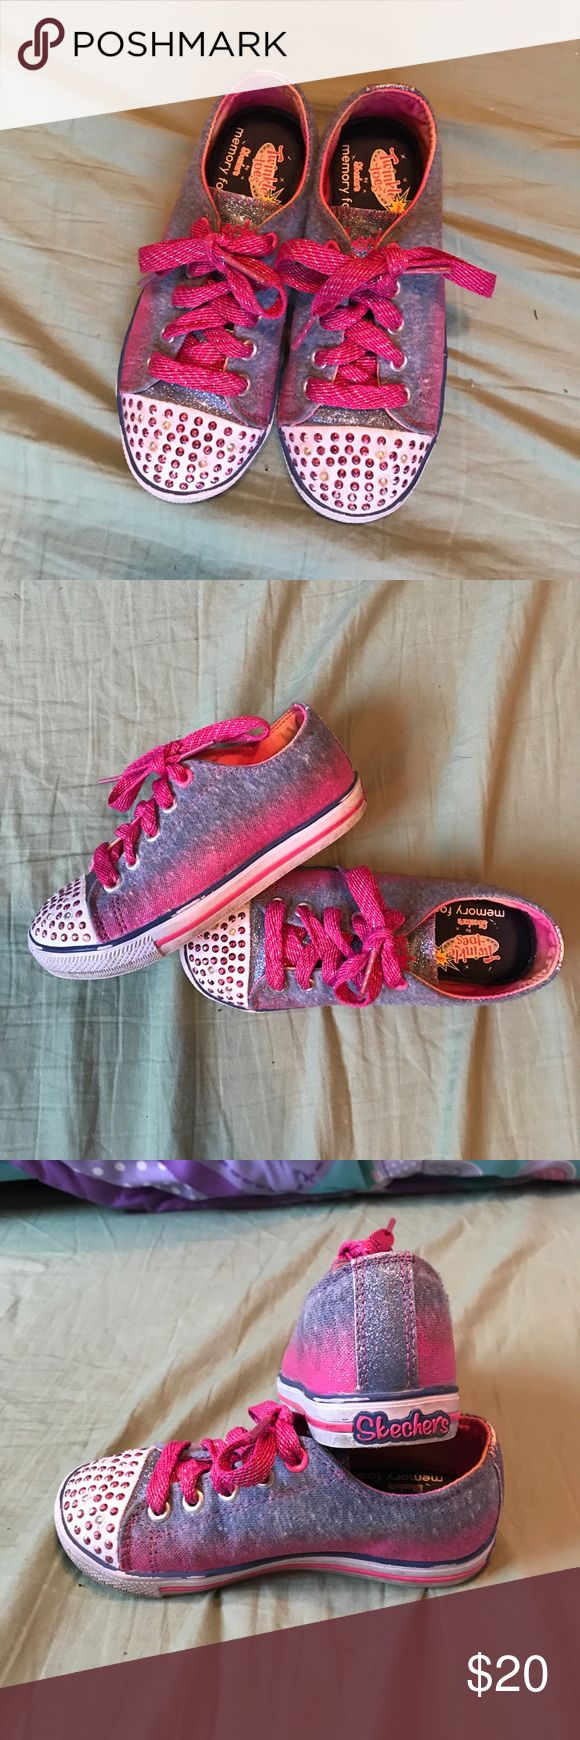 Girls Skechers twinkle toes Hardly worn girls ombré blue to pink skechers twinkle toes. They were rarely worn by my daughter. They both still light up perfect and are in very good condition. They have memory foam insoles for comfort. Skechers Shoes Sneakers